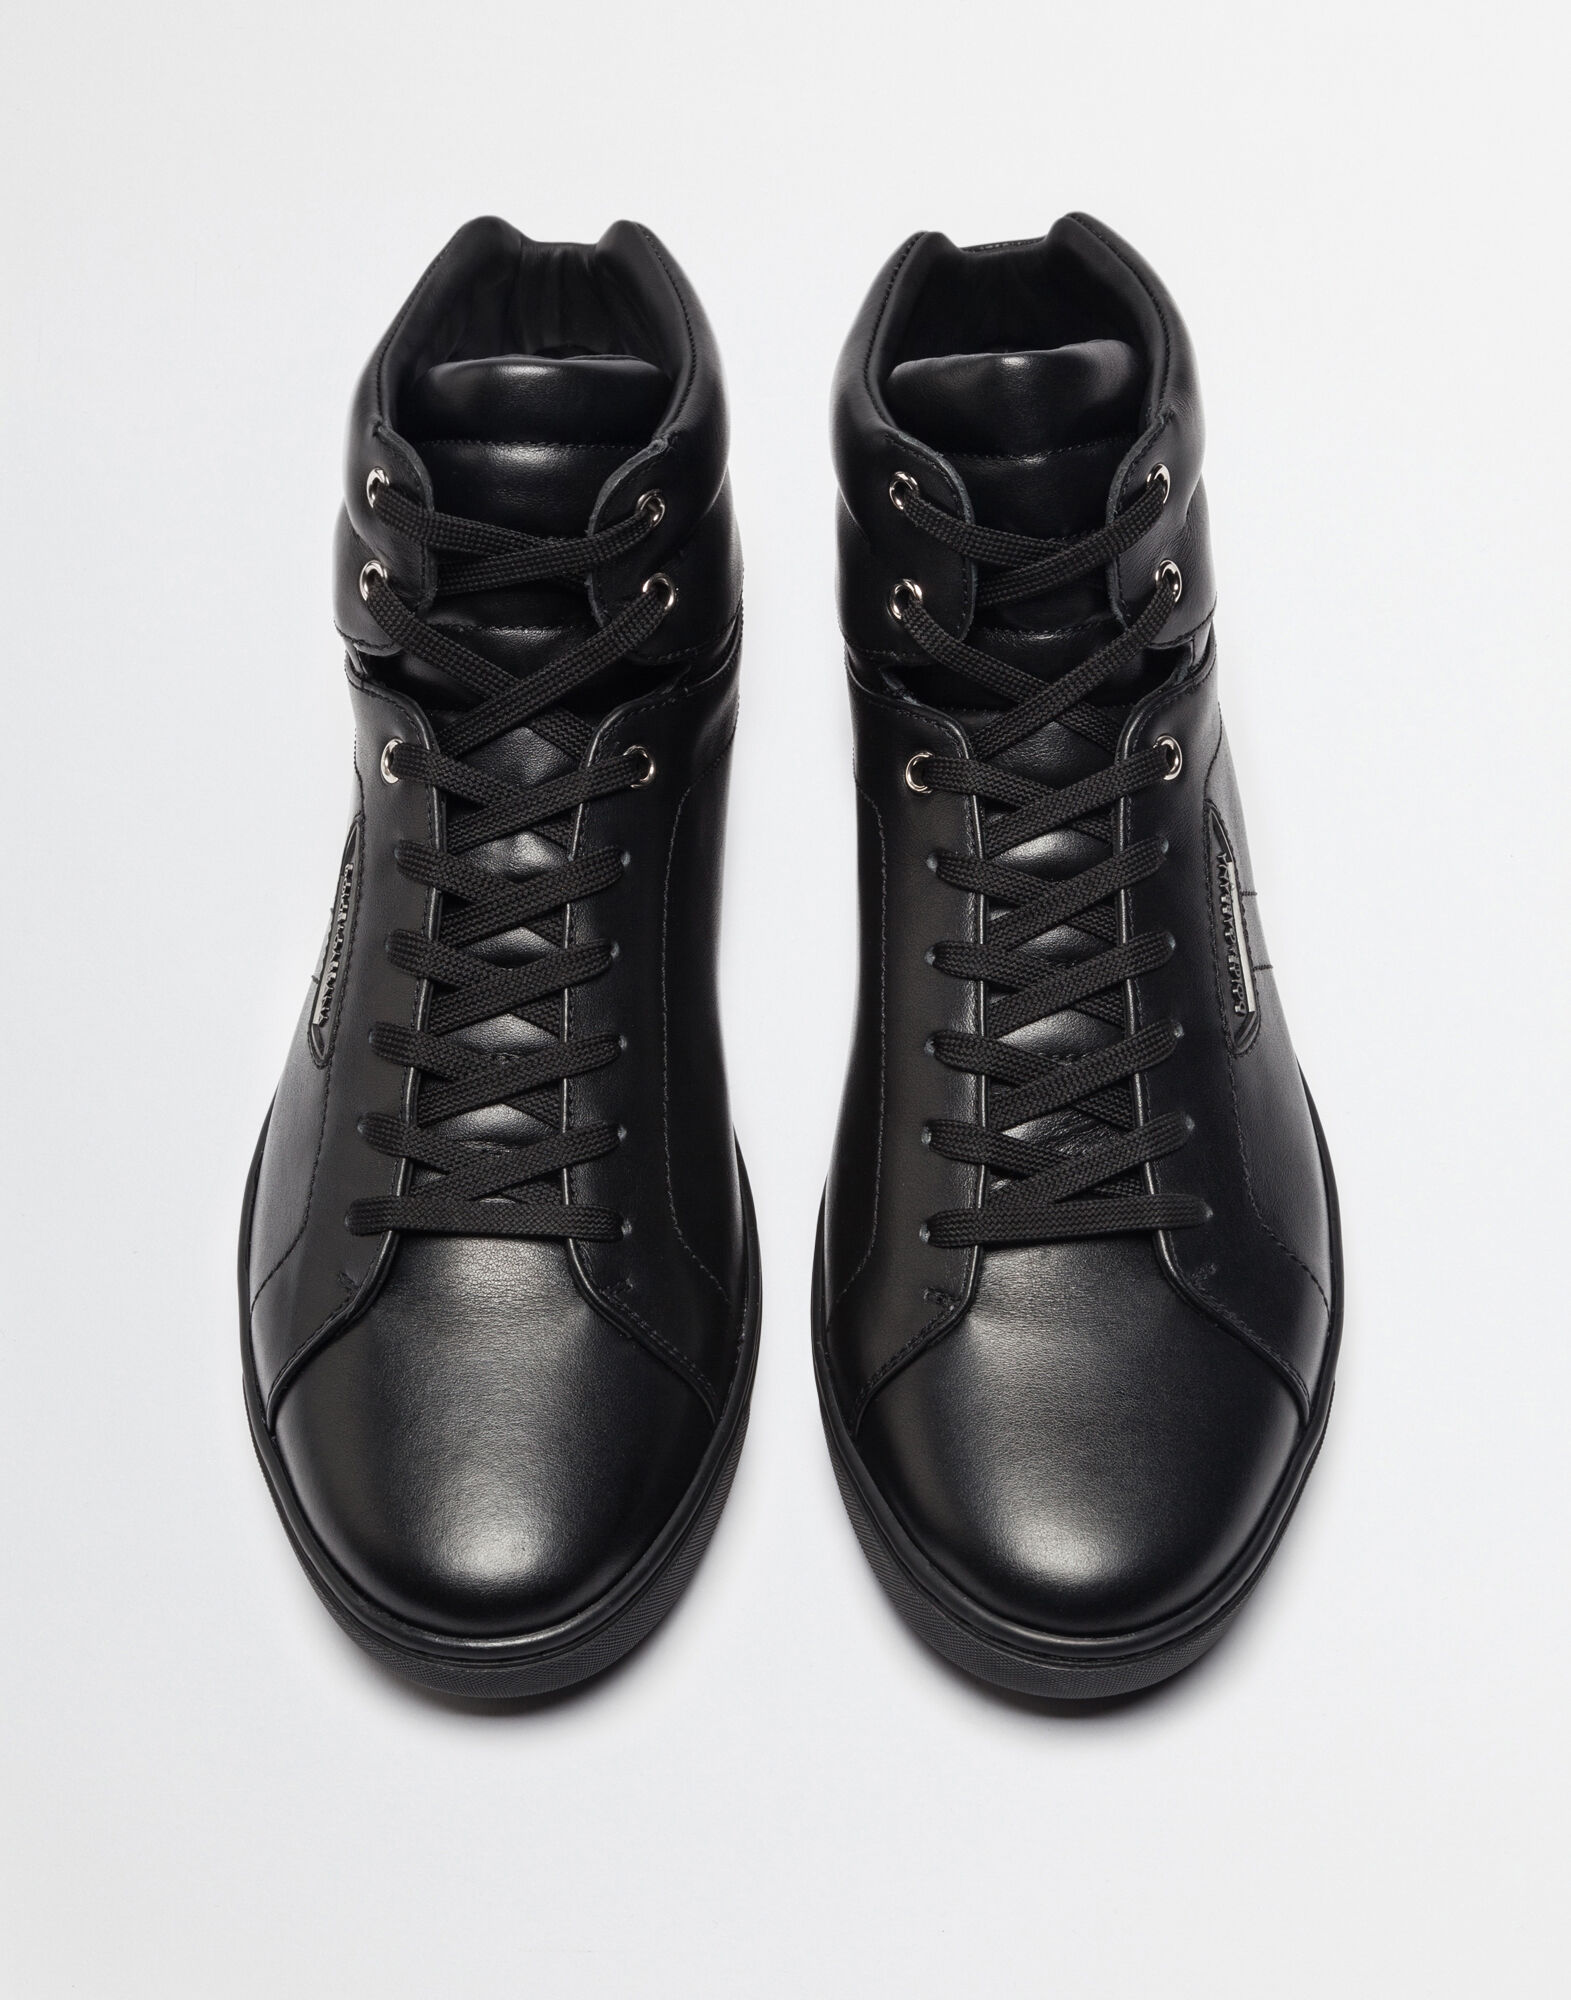 LONDON LEATHER HIGH TOP SNEAKERS